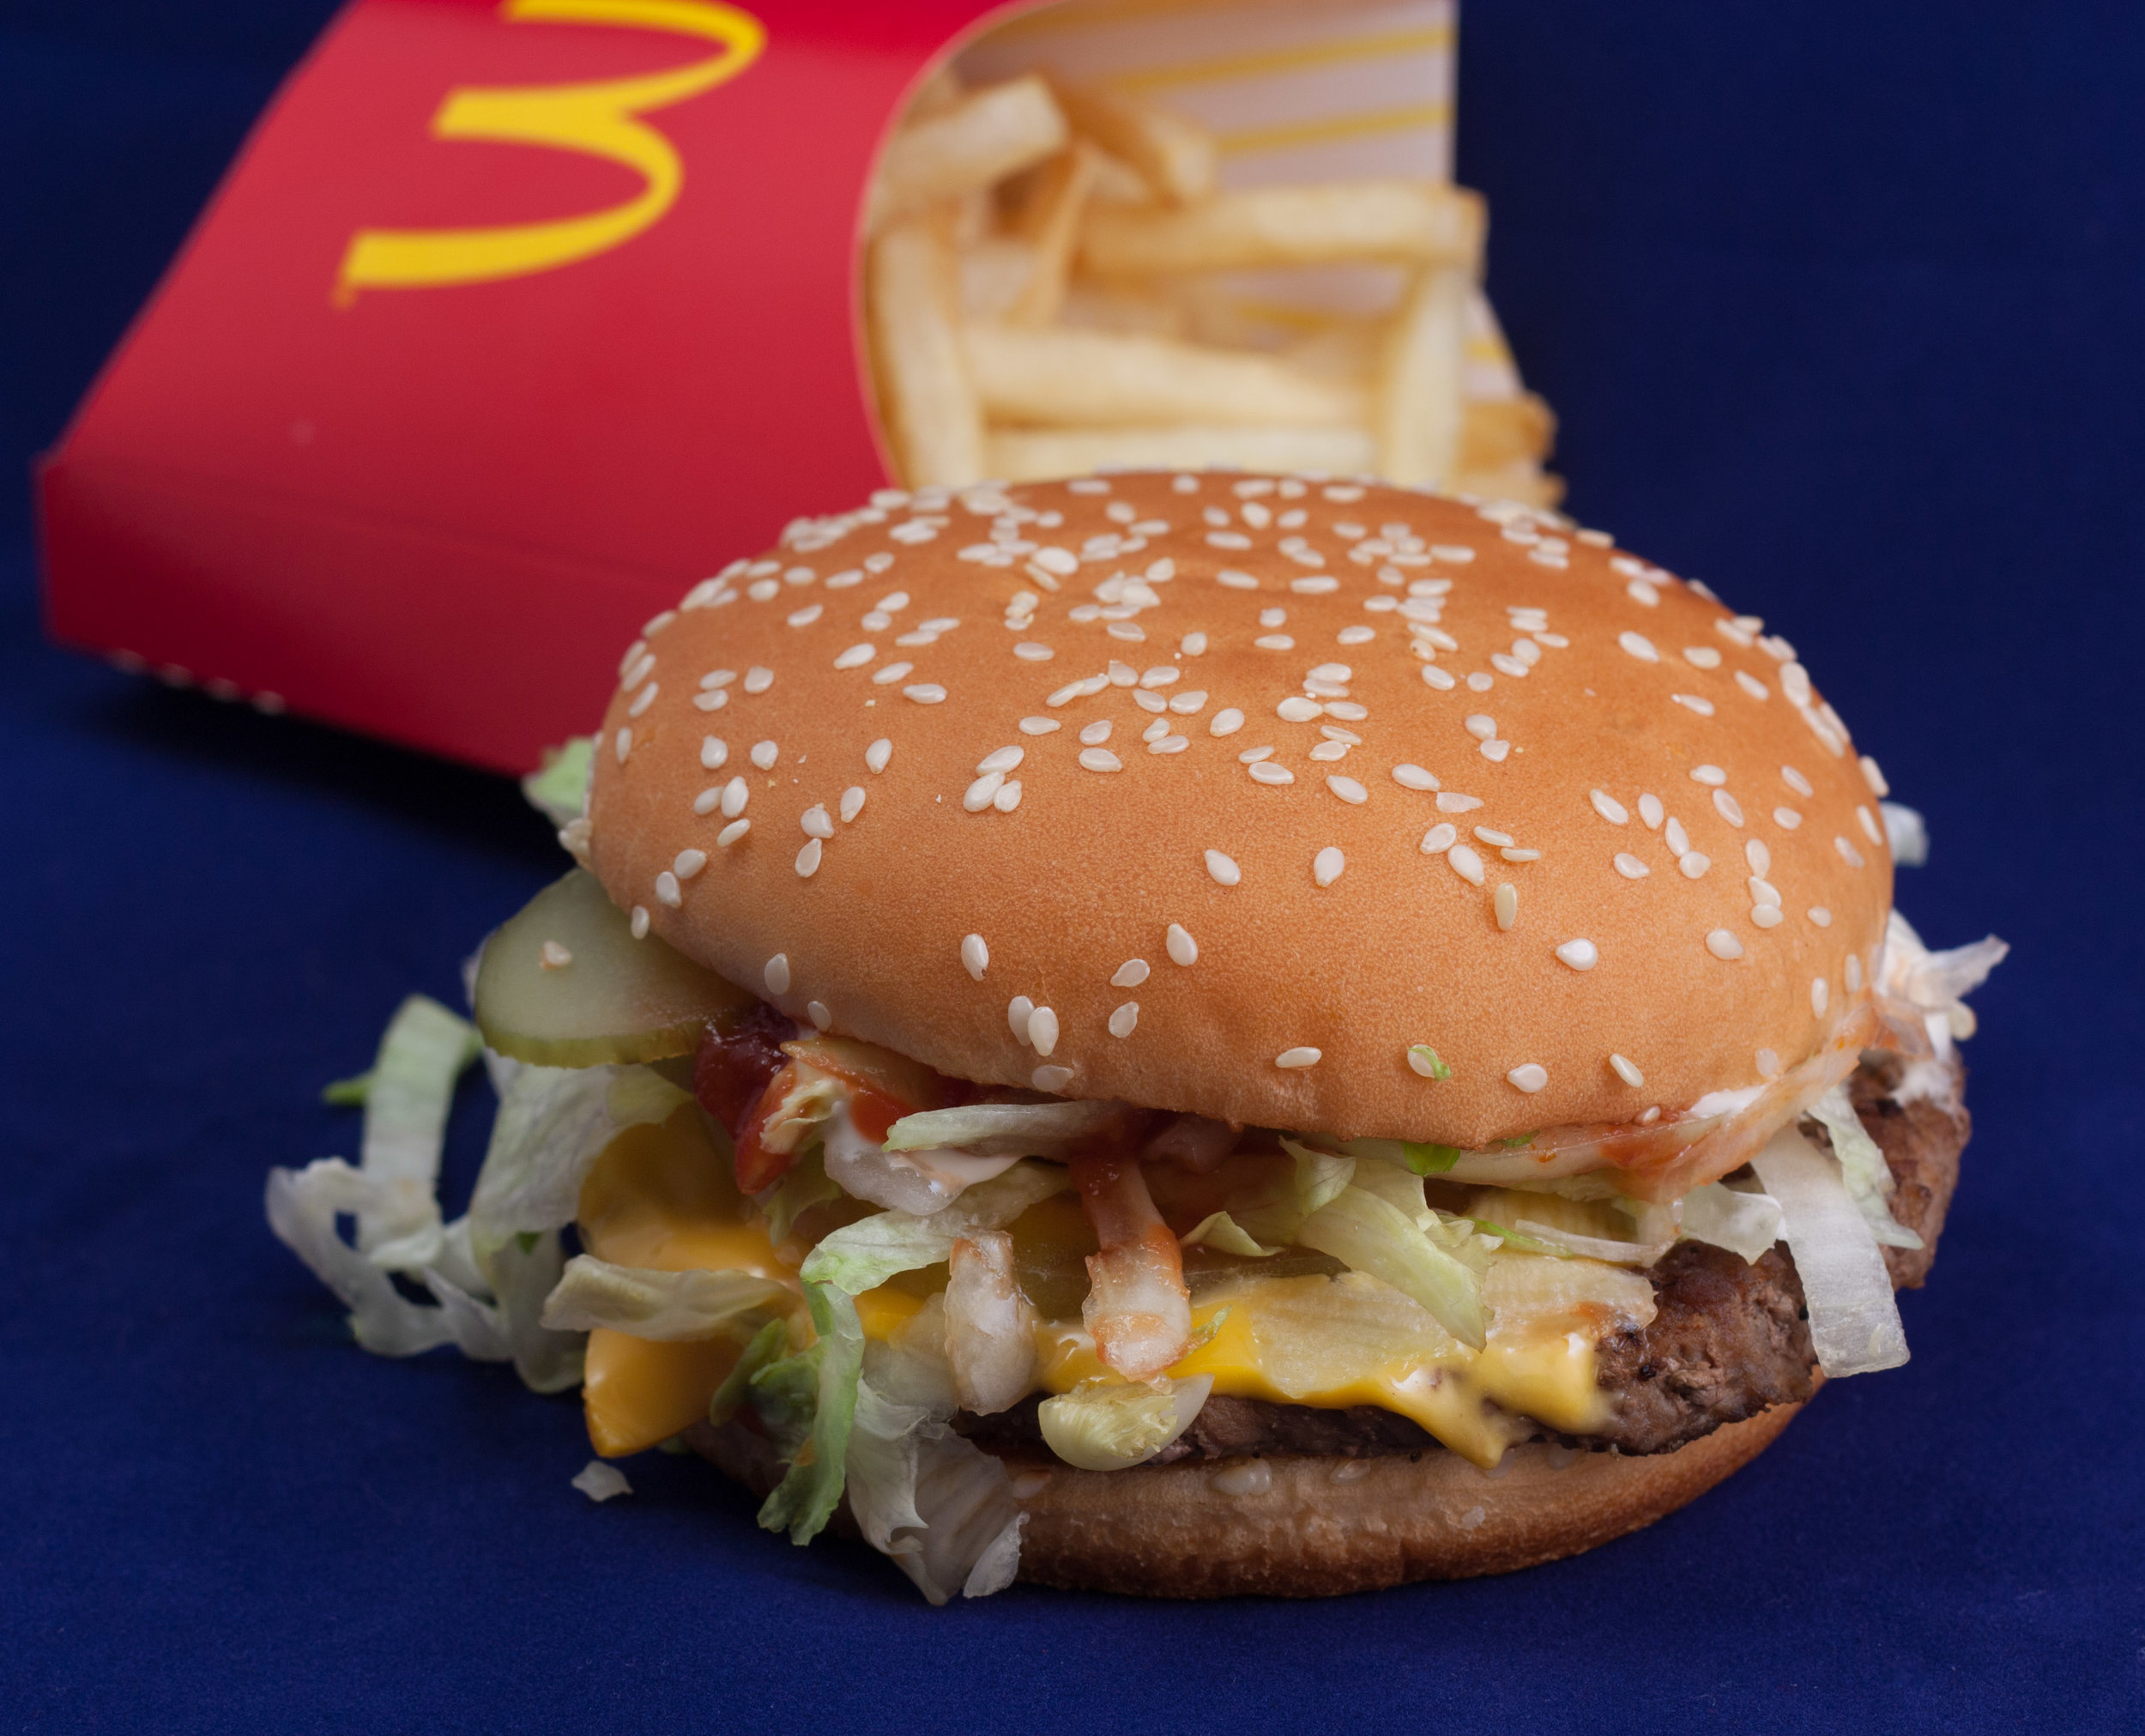 News: McDonald's Delivery is Now Possible!